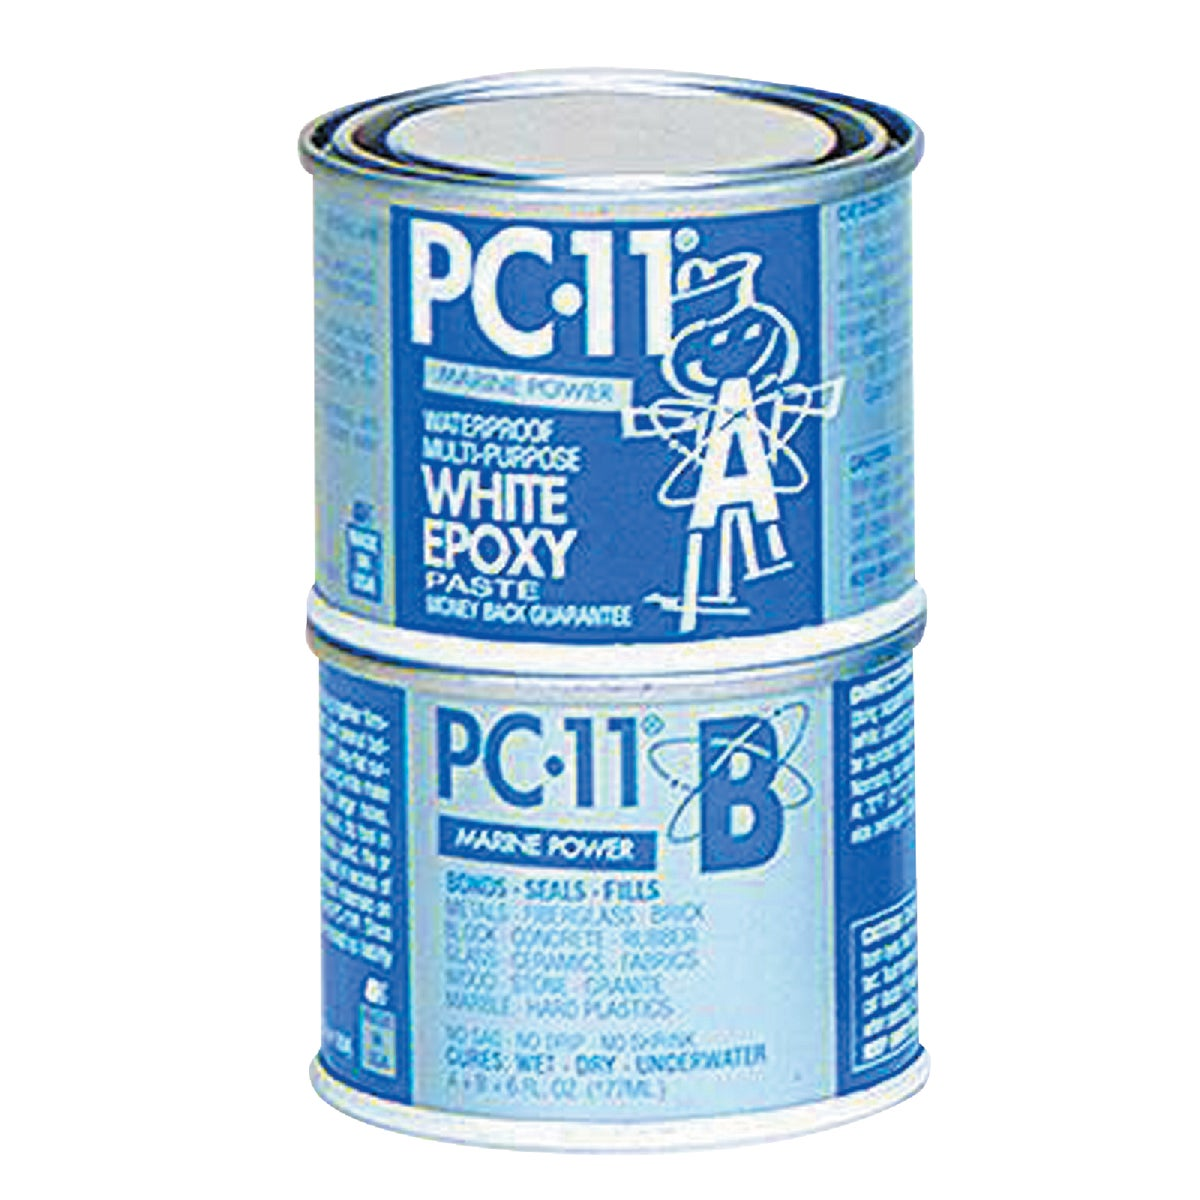 1/2LB PC-11 EPOXY PASTE - PC-11-1/2LB by Protective Coating